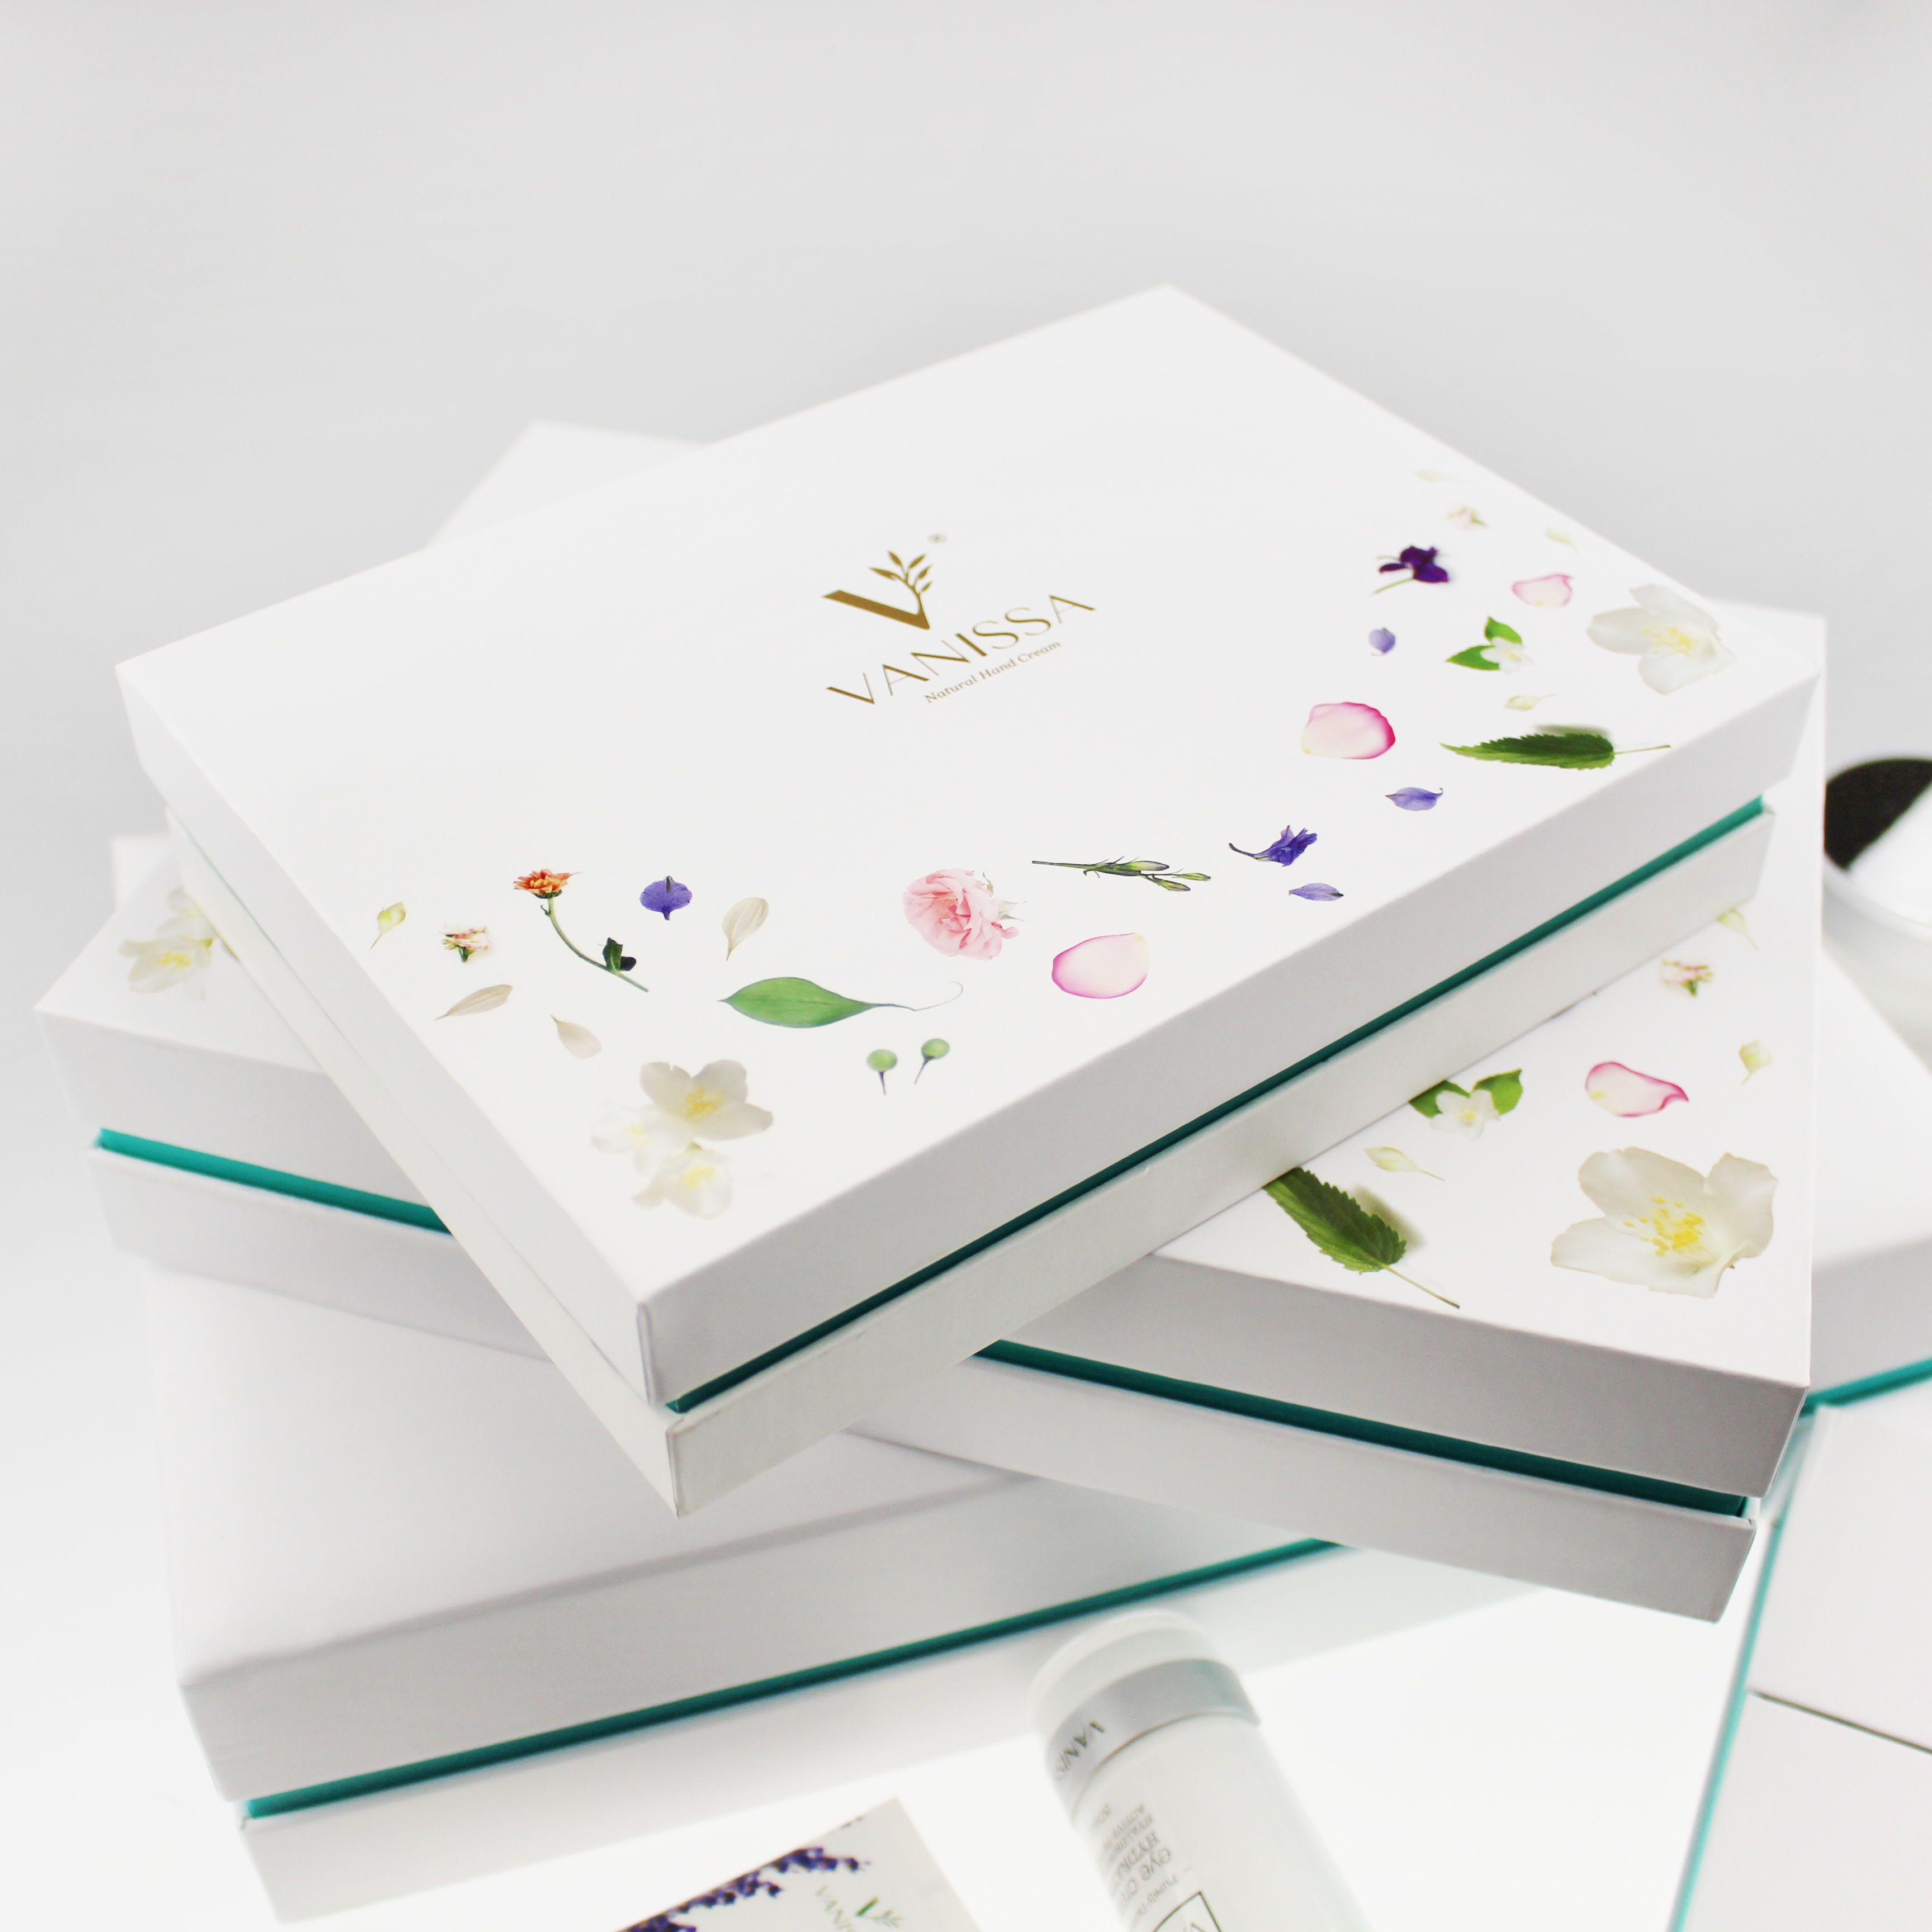 Have You Checked Out Our Gift Sets Yet From Skin Care To Hand Creams To Soap Bars We Have A Great Selection Gift Set Skincare Gift Set Skin Care Collection